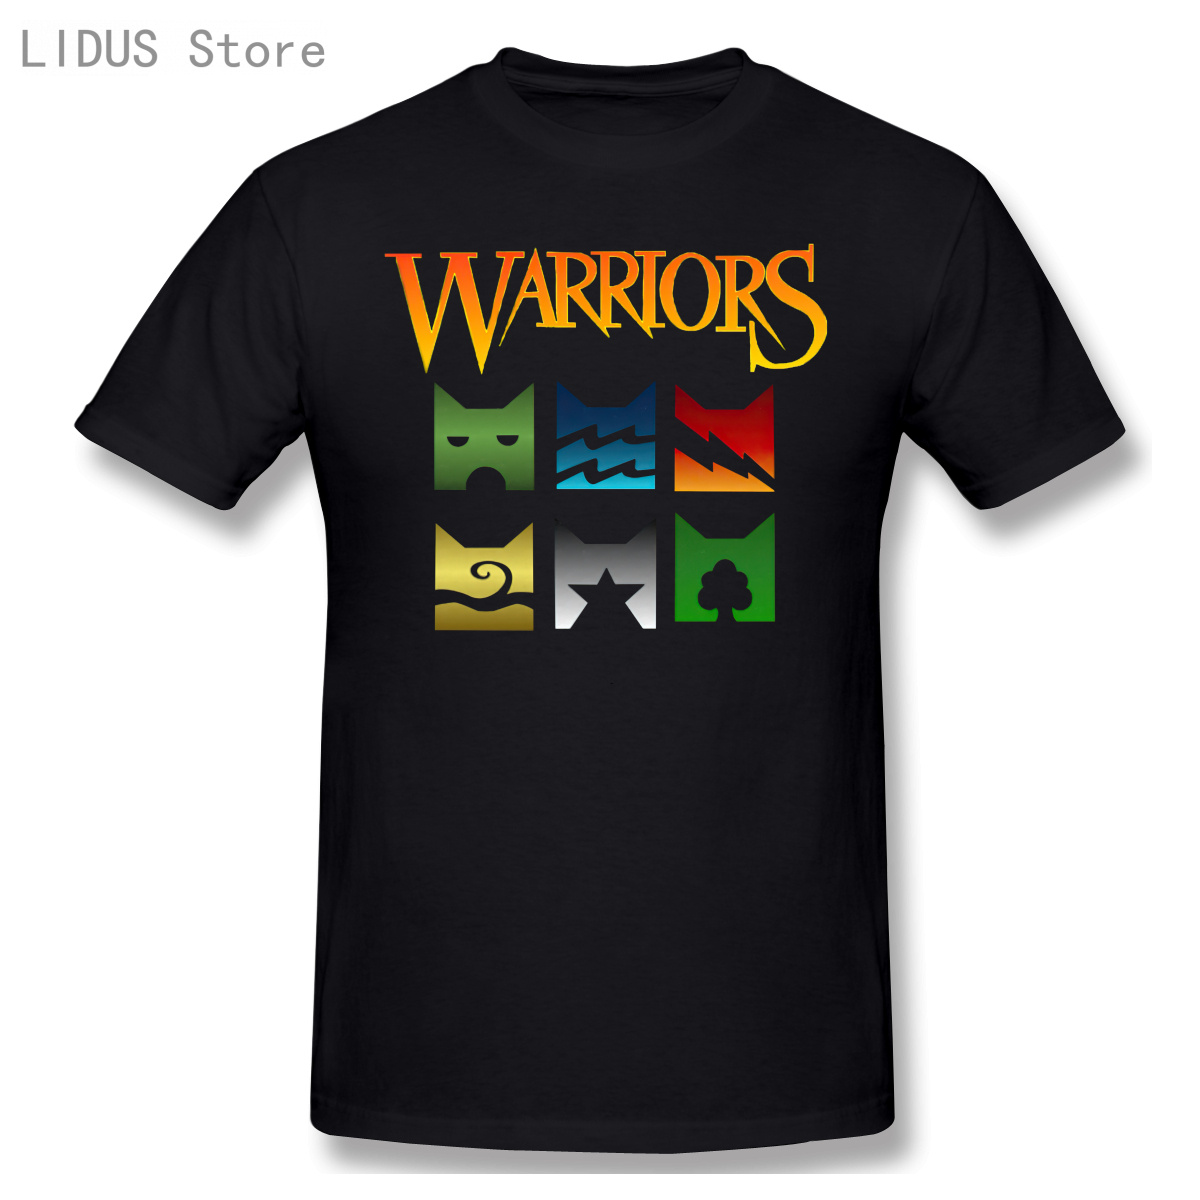 Warriors -Cat Logo Cool And Funny Short Sleeve Casual T-shirt Men Fashion O-neck 100% Cotton TShirts Tee Top